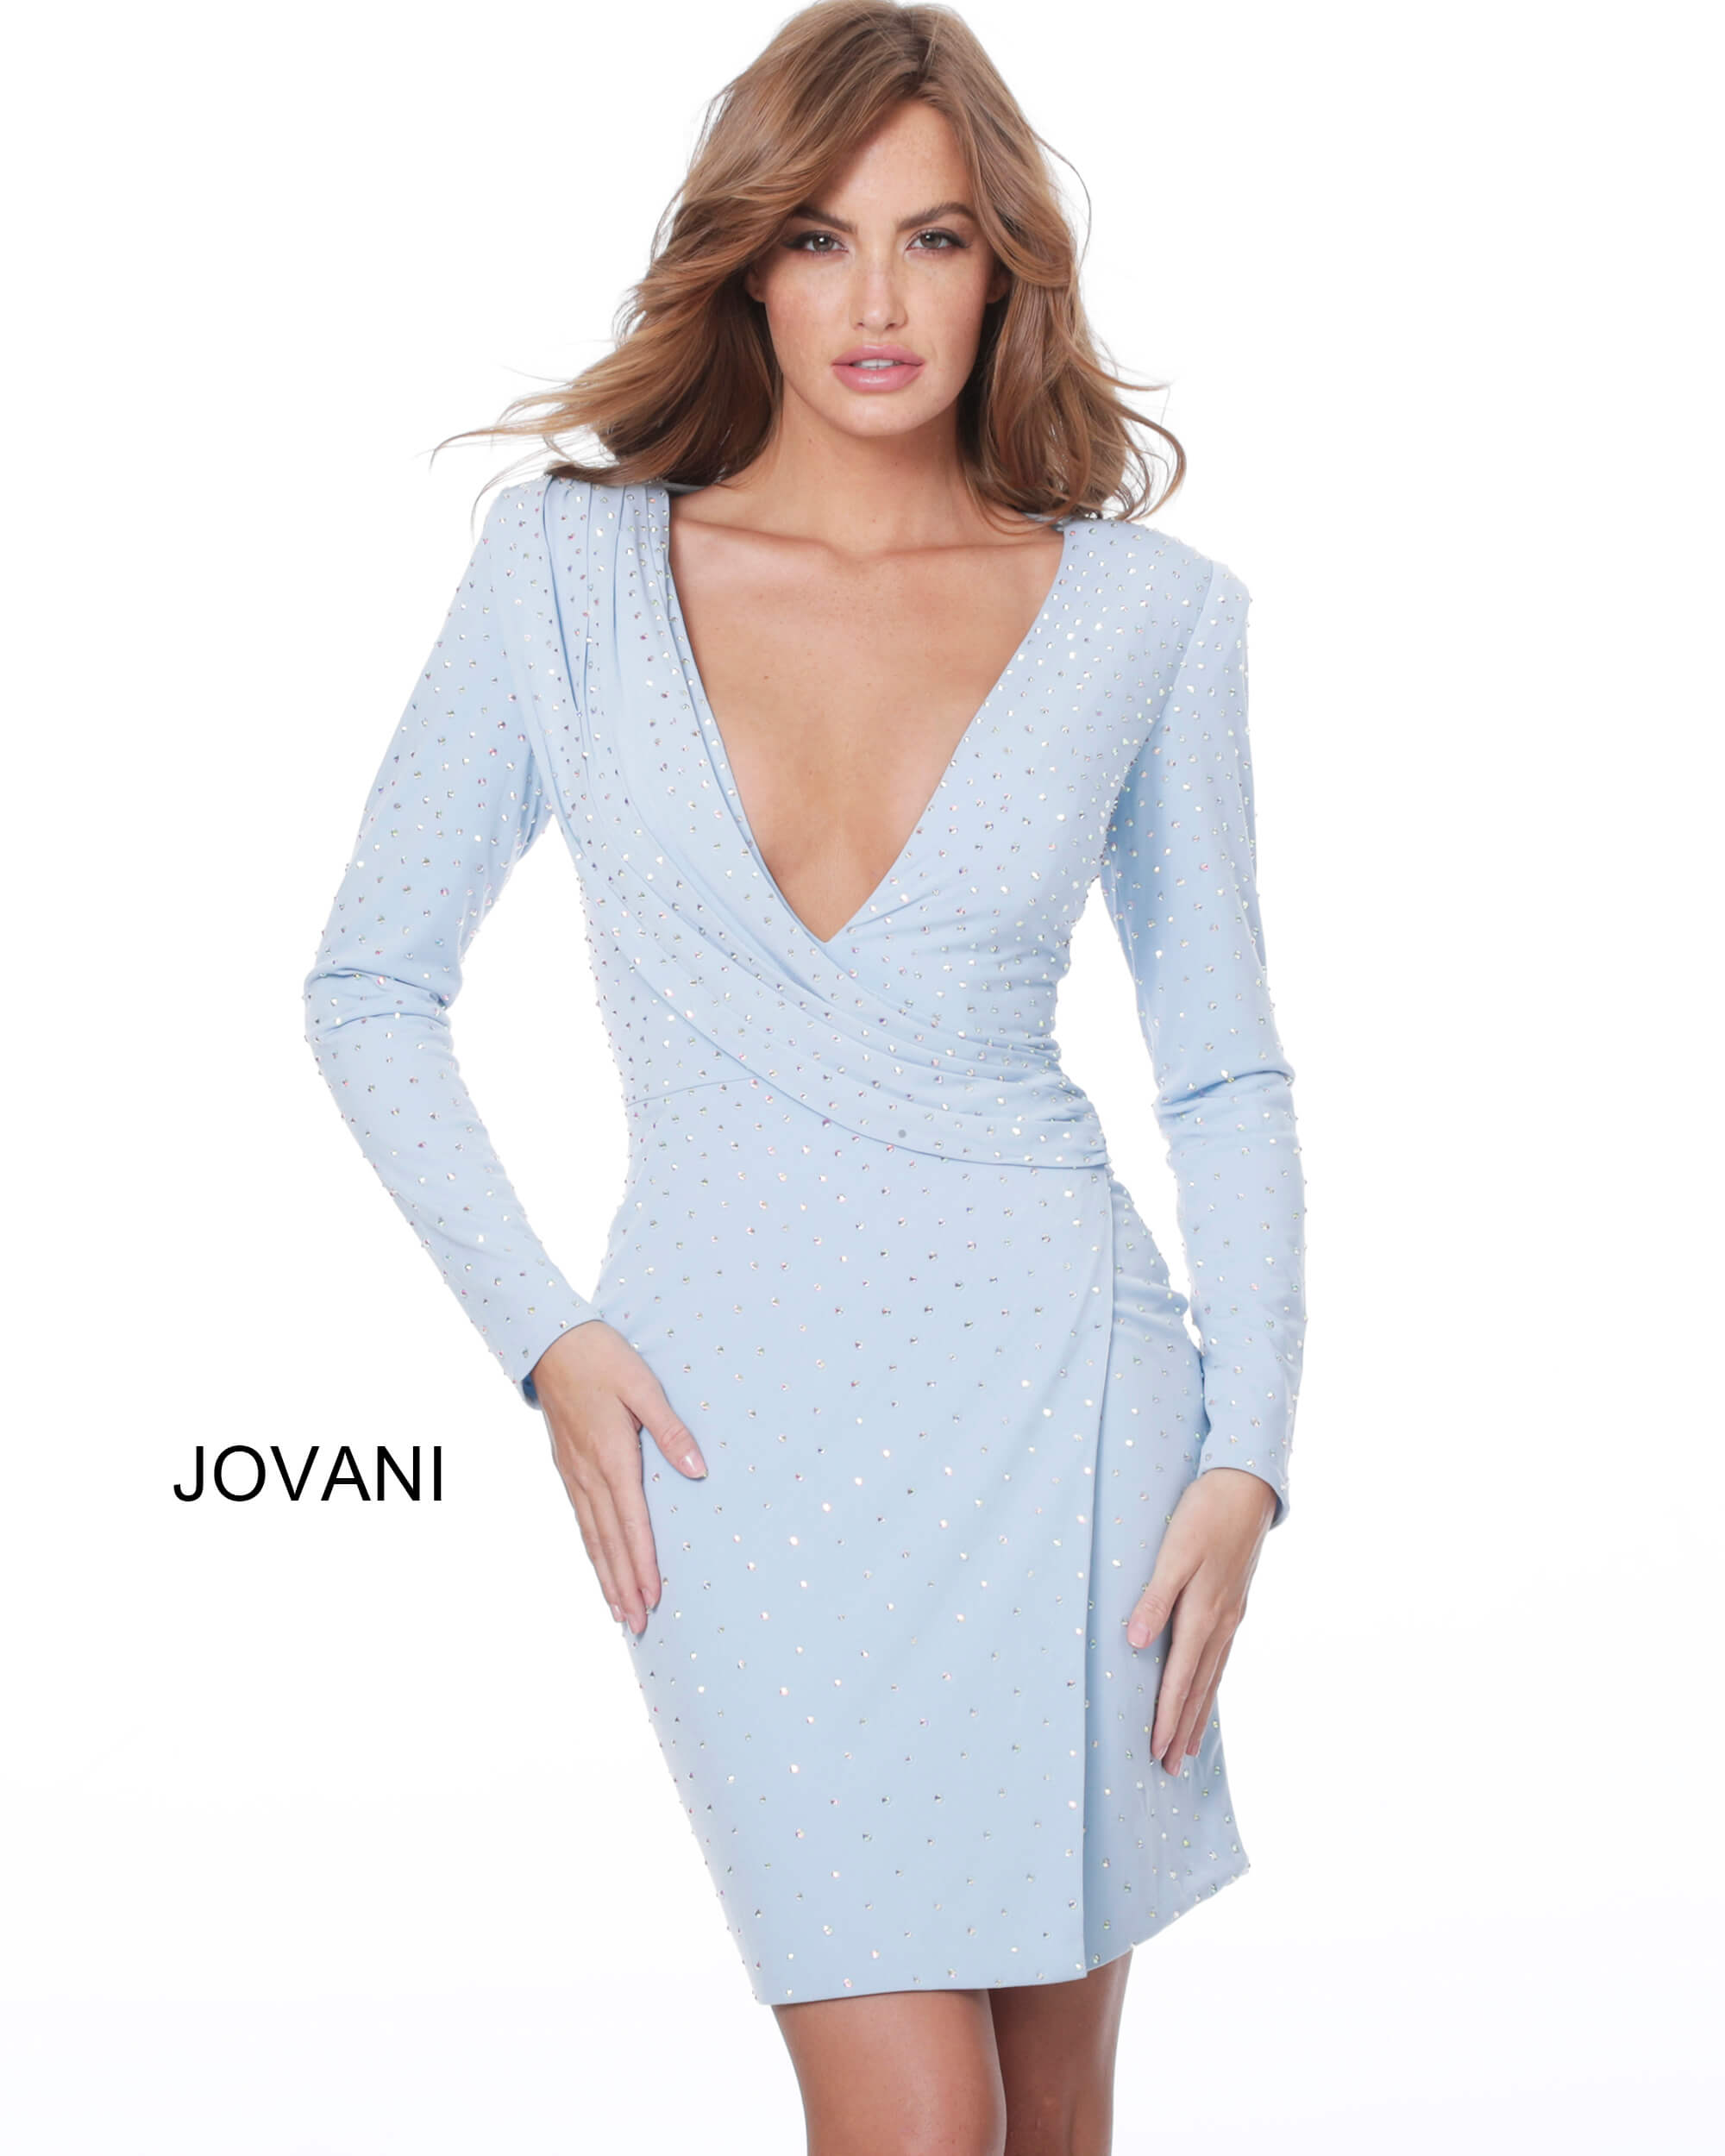 jovani Jovani 04015 Light Blue Long Sleeve Draped Cocktail Dress on mobile 6